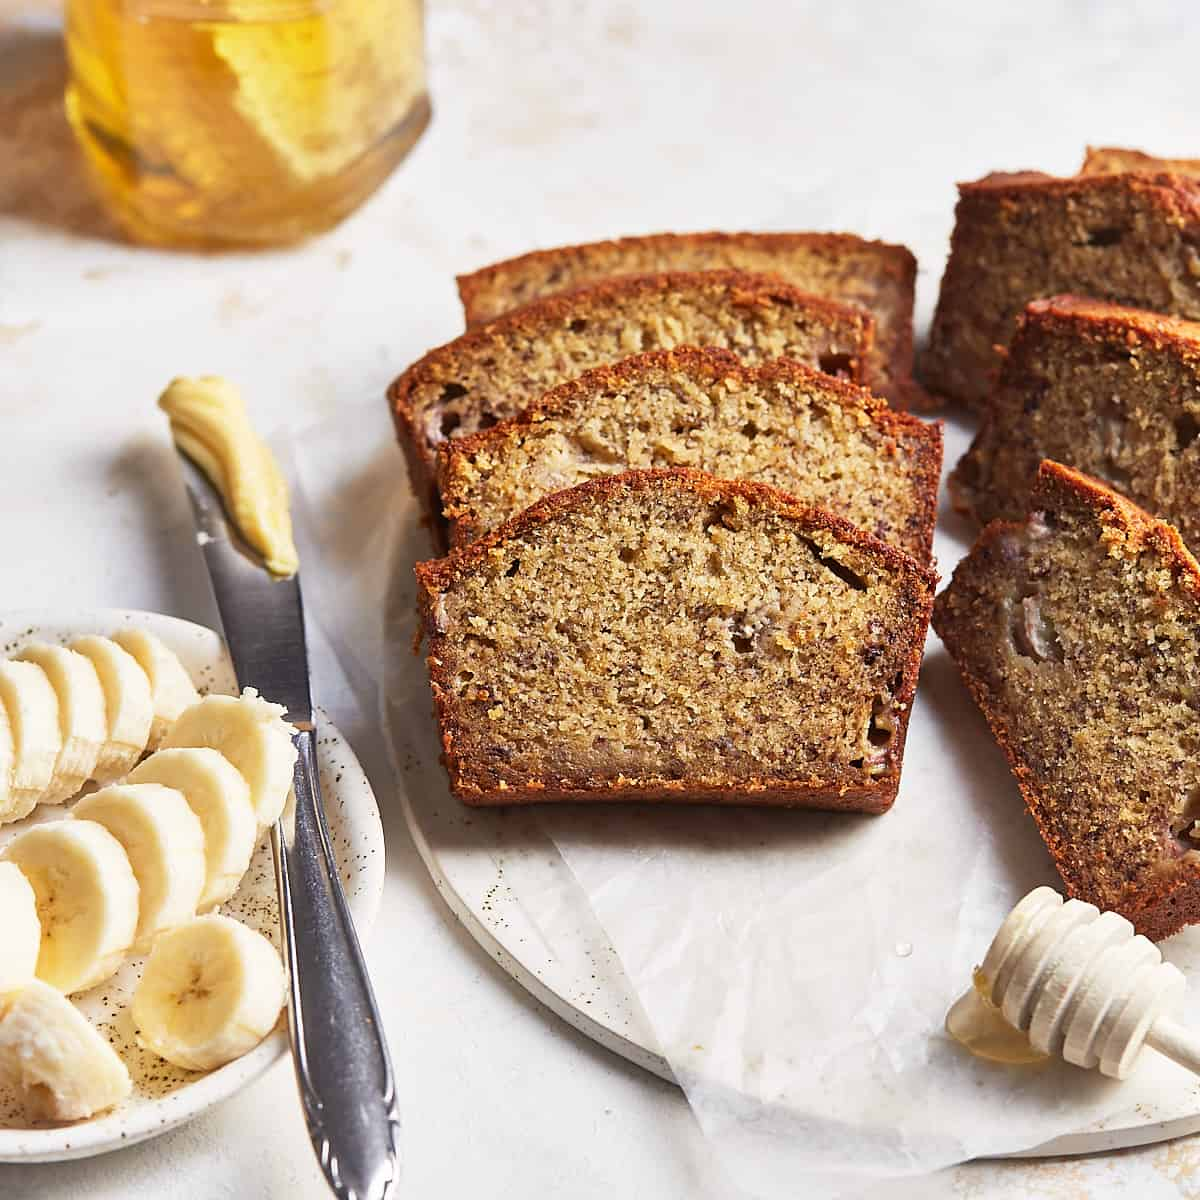 Slices of banana bread on a serving plate with butter, honey, and bananas